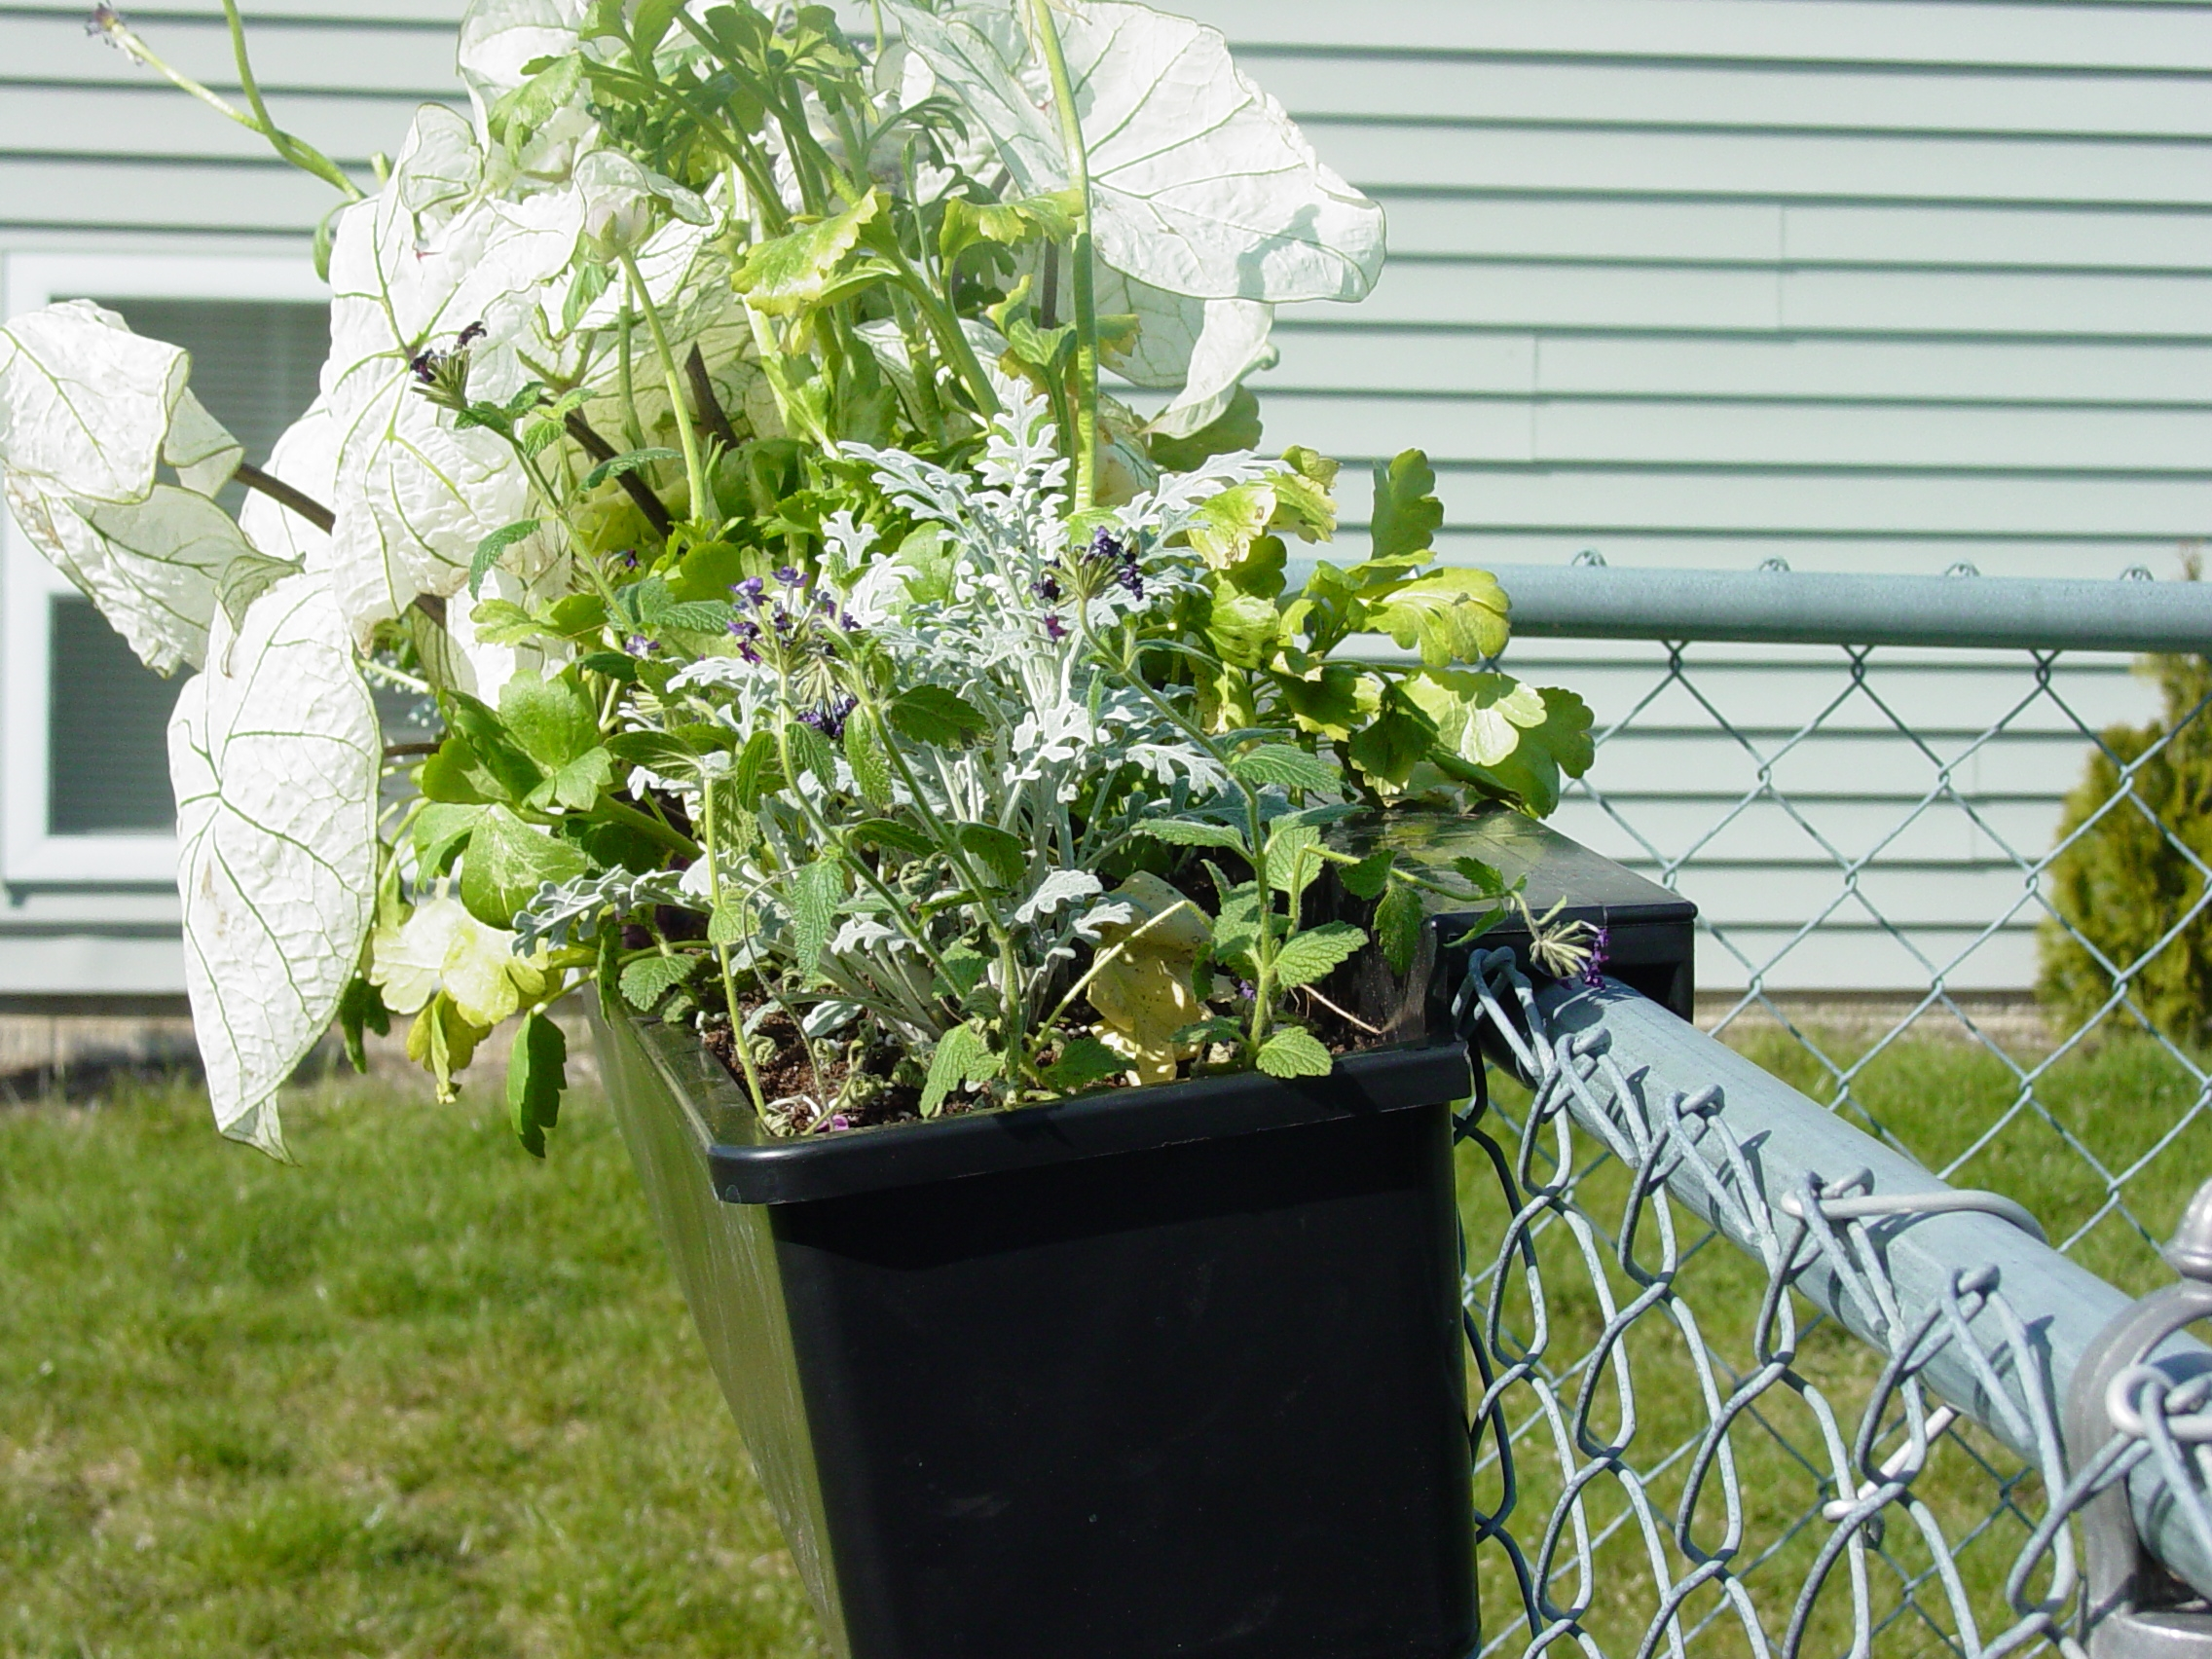 Our Hanging Planters Hang On Your Secure Structure This Is A Side View Of 36 Planter Chain Link Fence